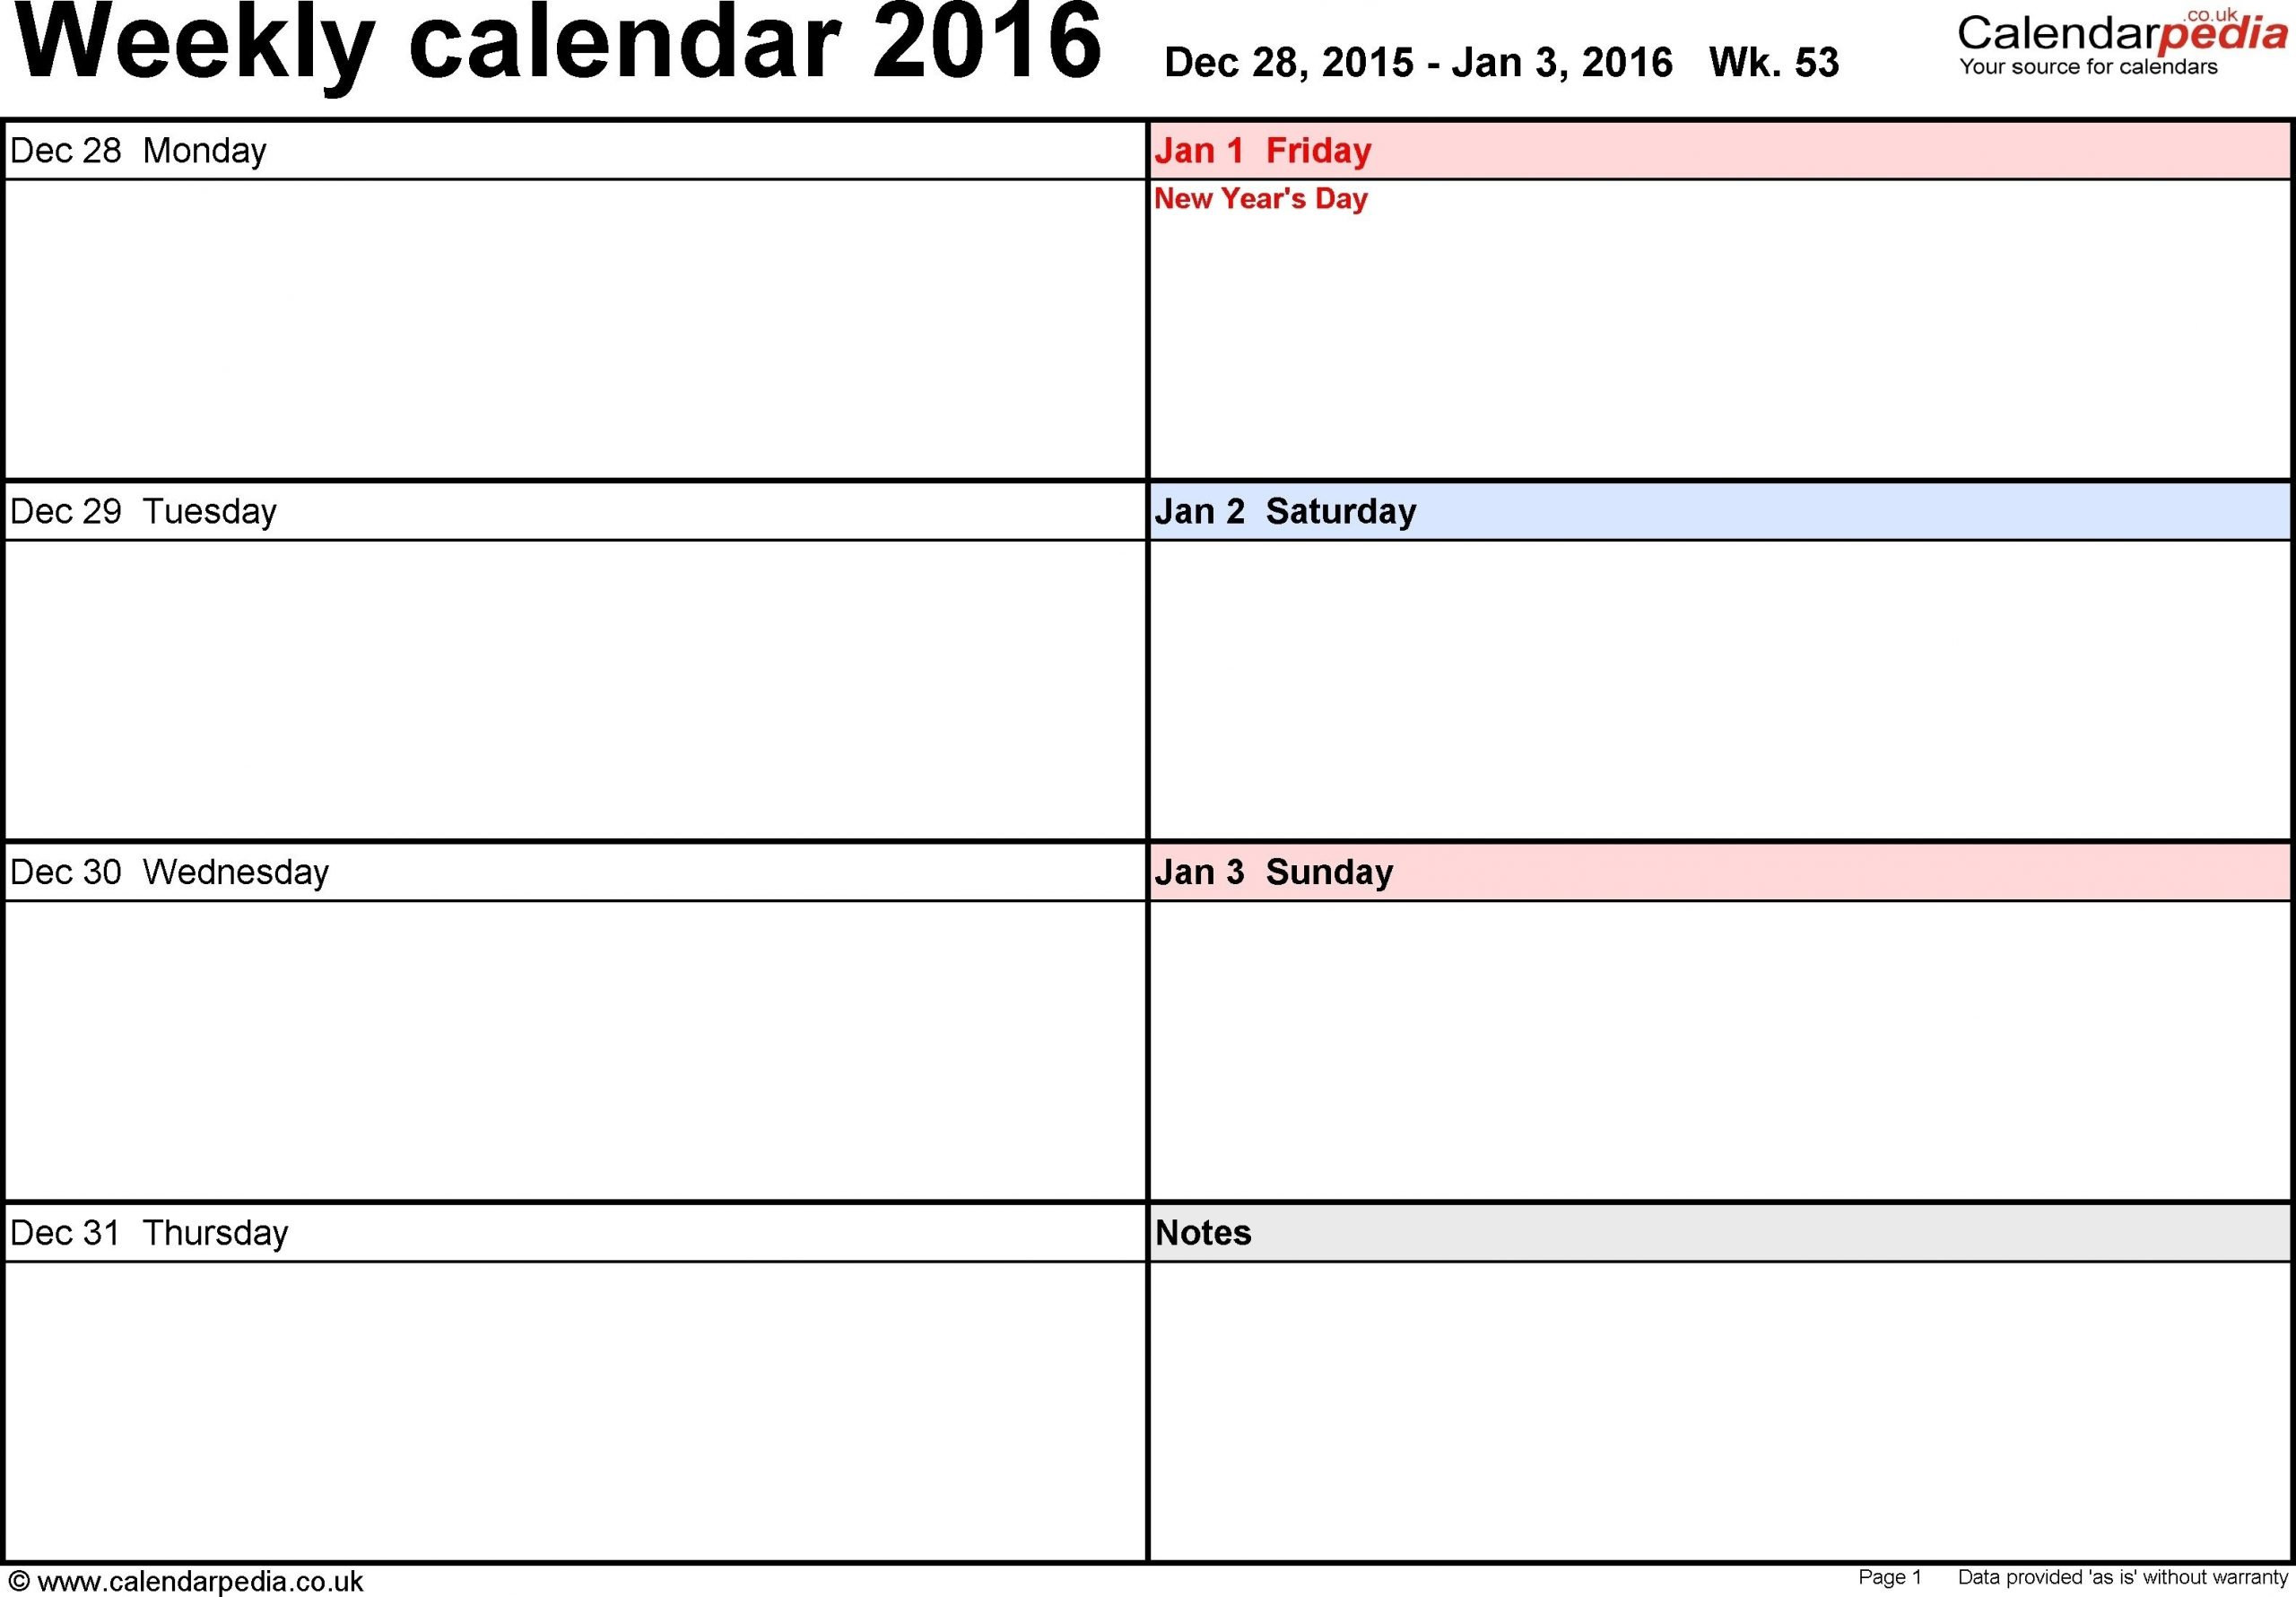 Calendar Template 1 Week In 2020 | Weekly Planner Template